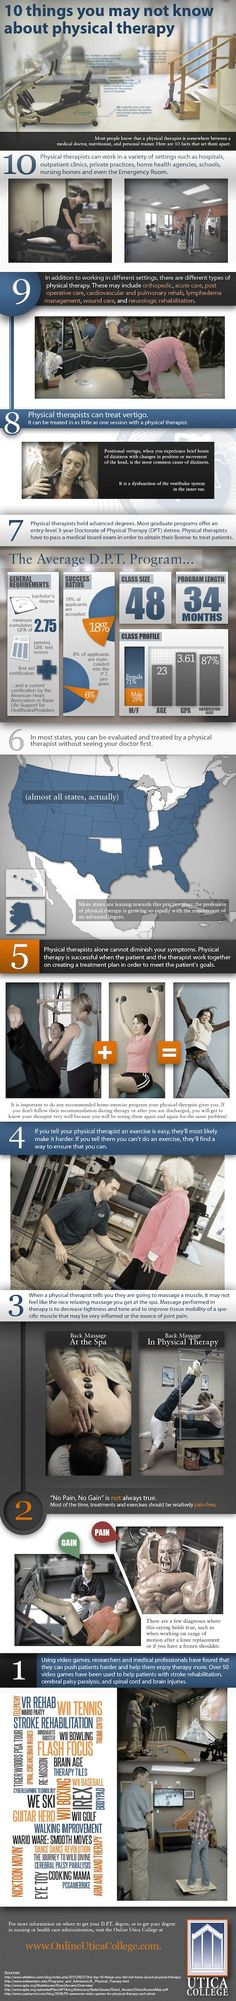 10 Things you may not know about Physical Therapy. Repinned by SOS Inc. Resources @sostherapy.